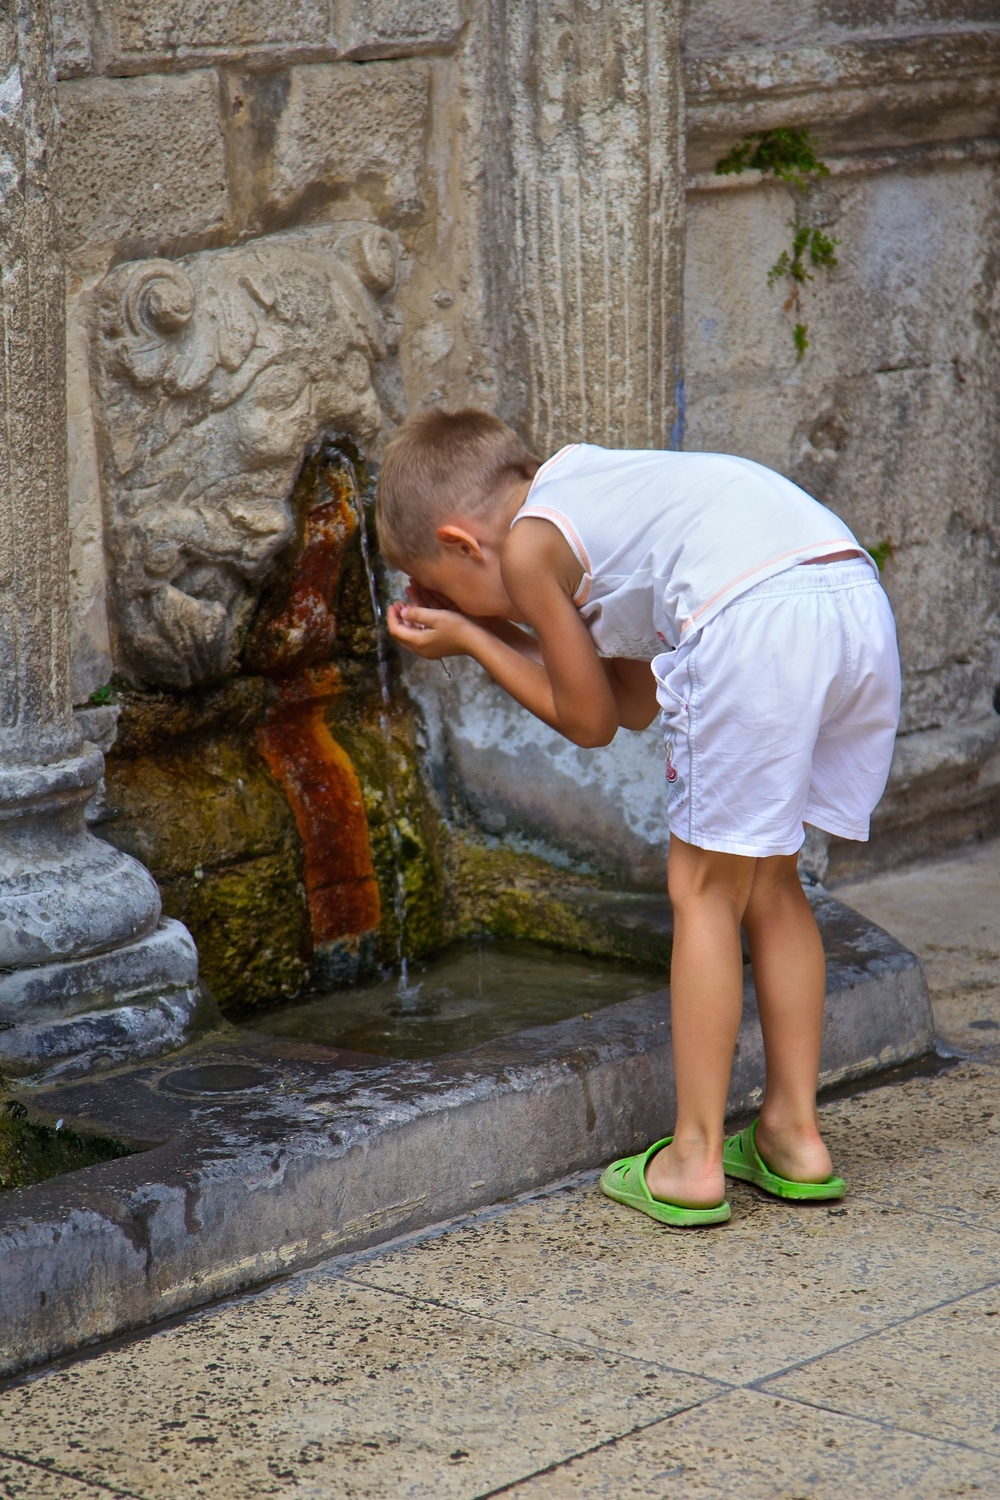 Drinking water from an ancient fountain. Creta, Greece